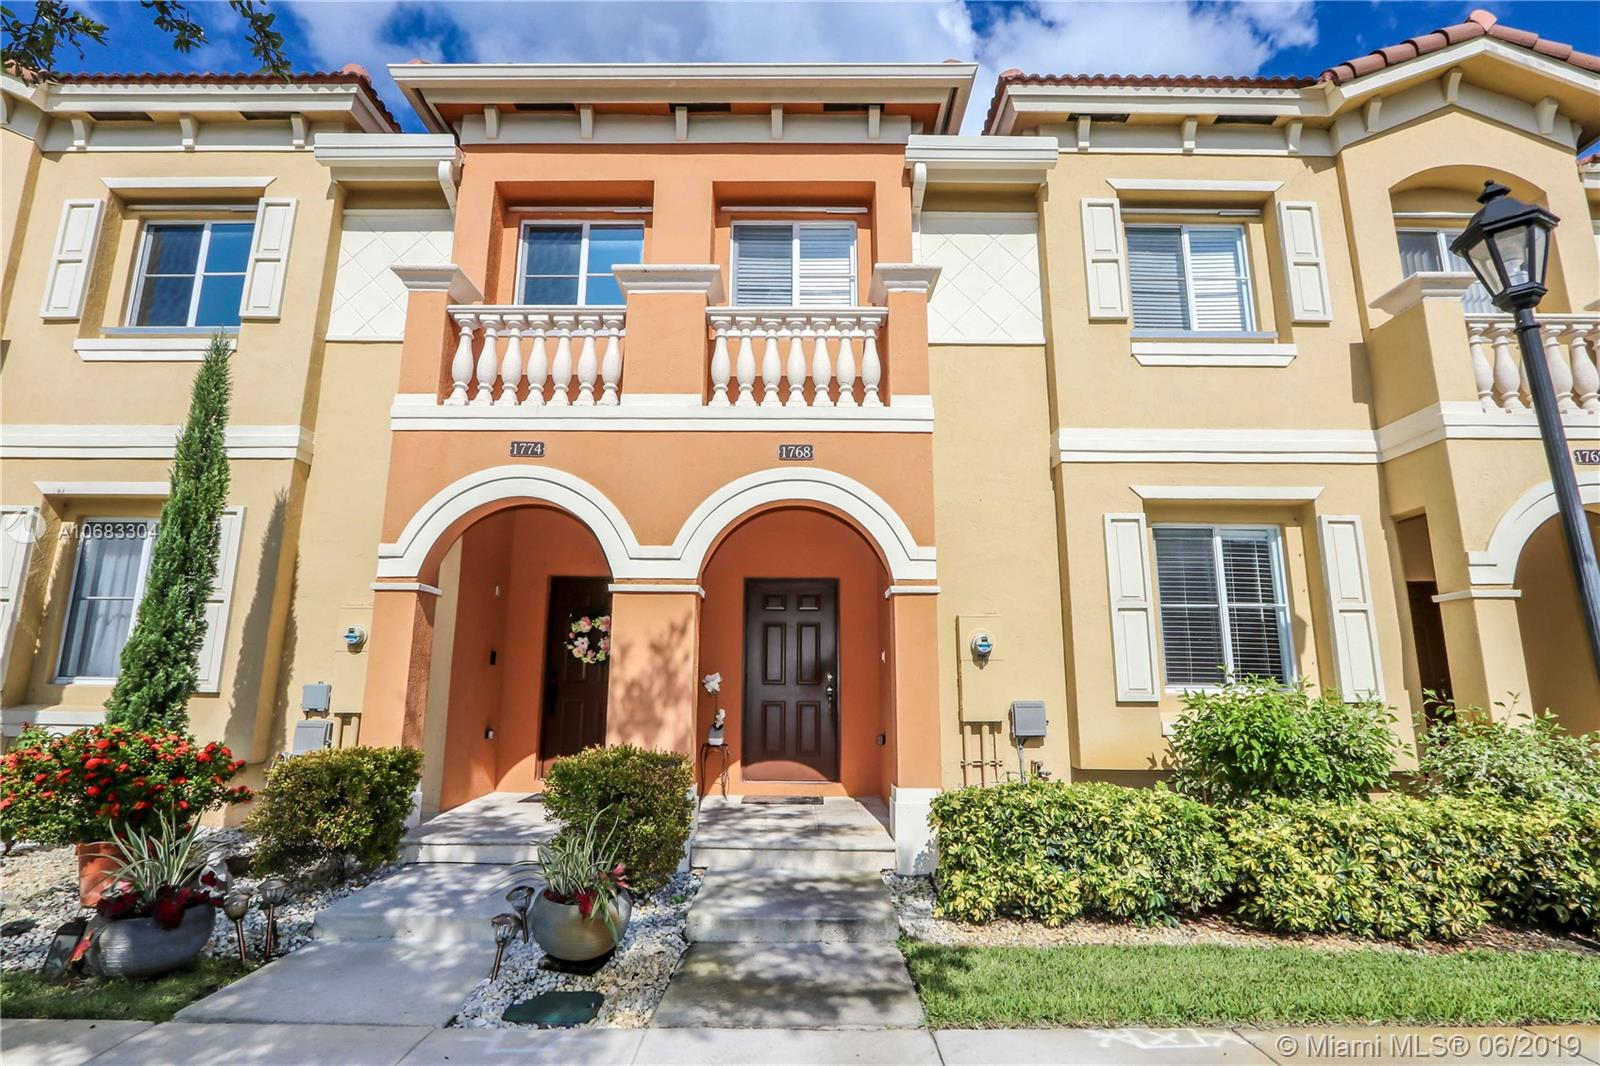 1768 S W 89th Way #1768 For Sale A10683304, FL